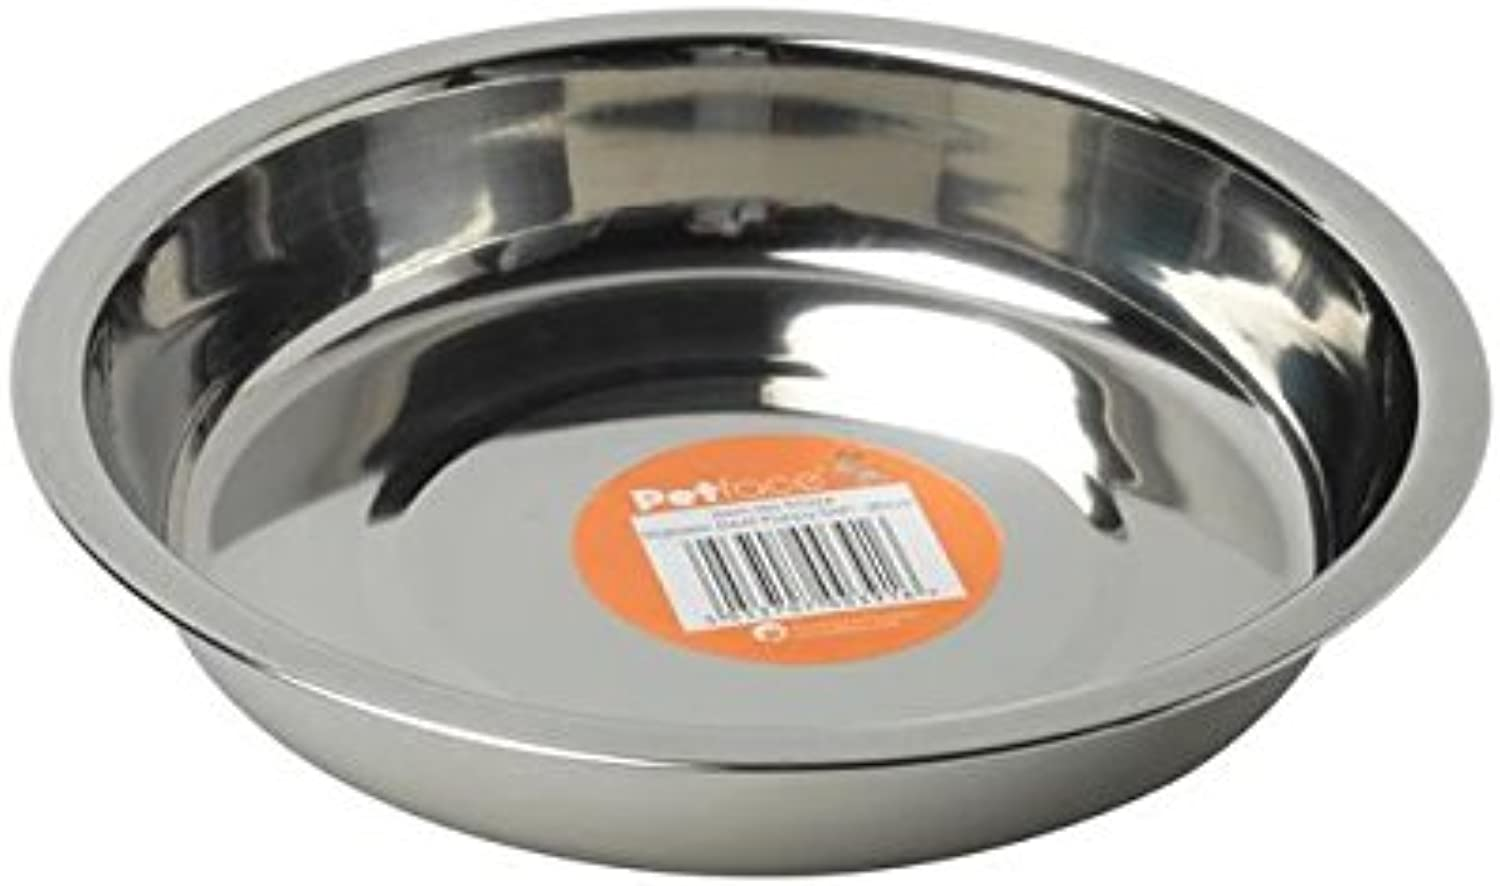 Petface Stainless Steel Shallow Dish (PACK OF 6)